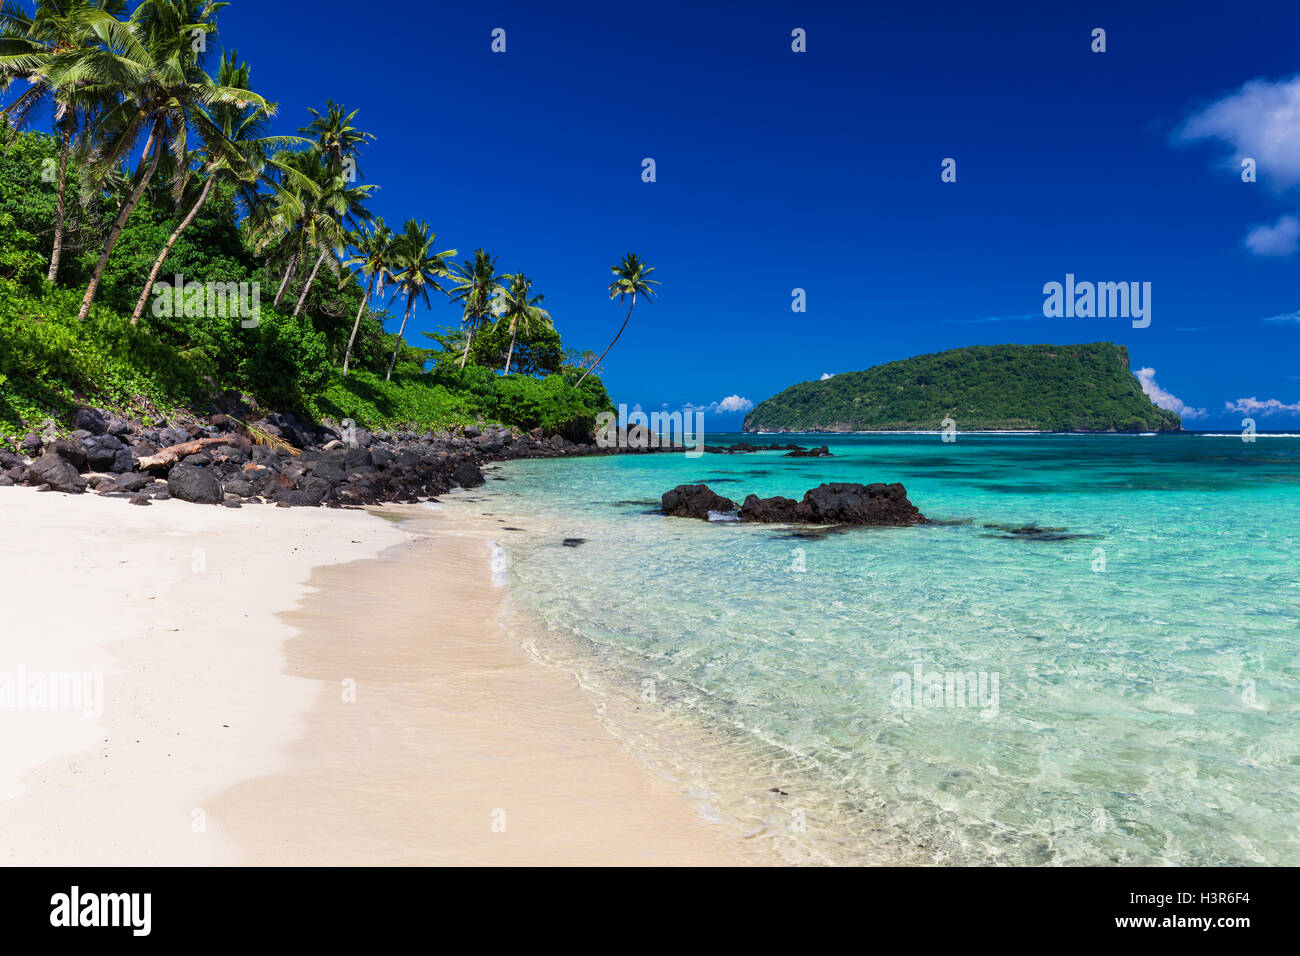 Vibrant tropical Lalomanu beach on Samoa Island with coconut palm trees - Stock Image